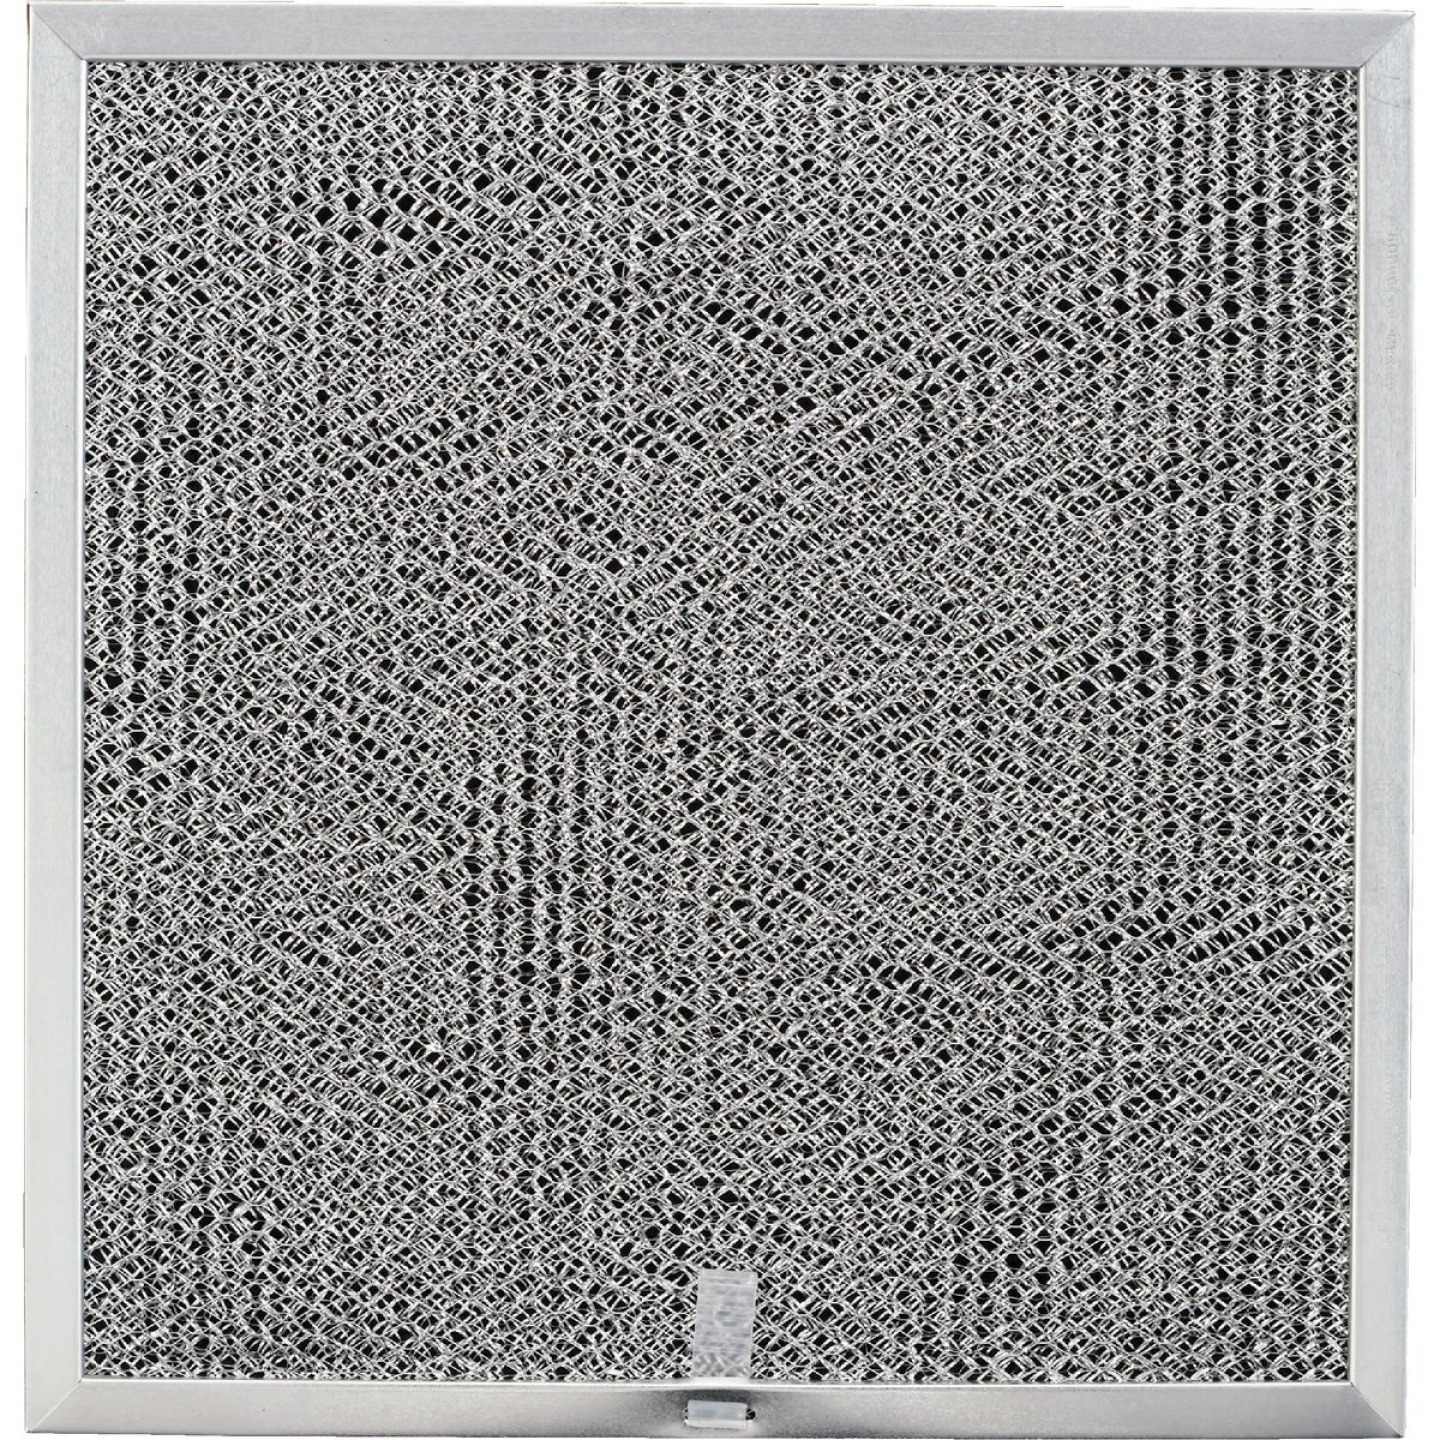 Broan-Nutone Quiet Hood Non-Ducted Charcoal Range Hood Filter Image 1